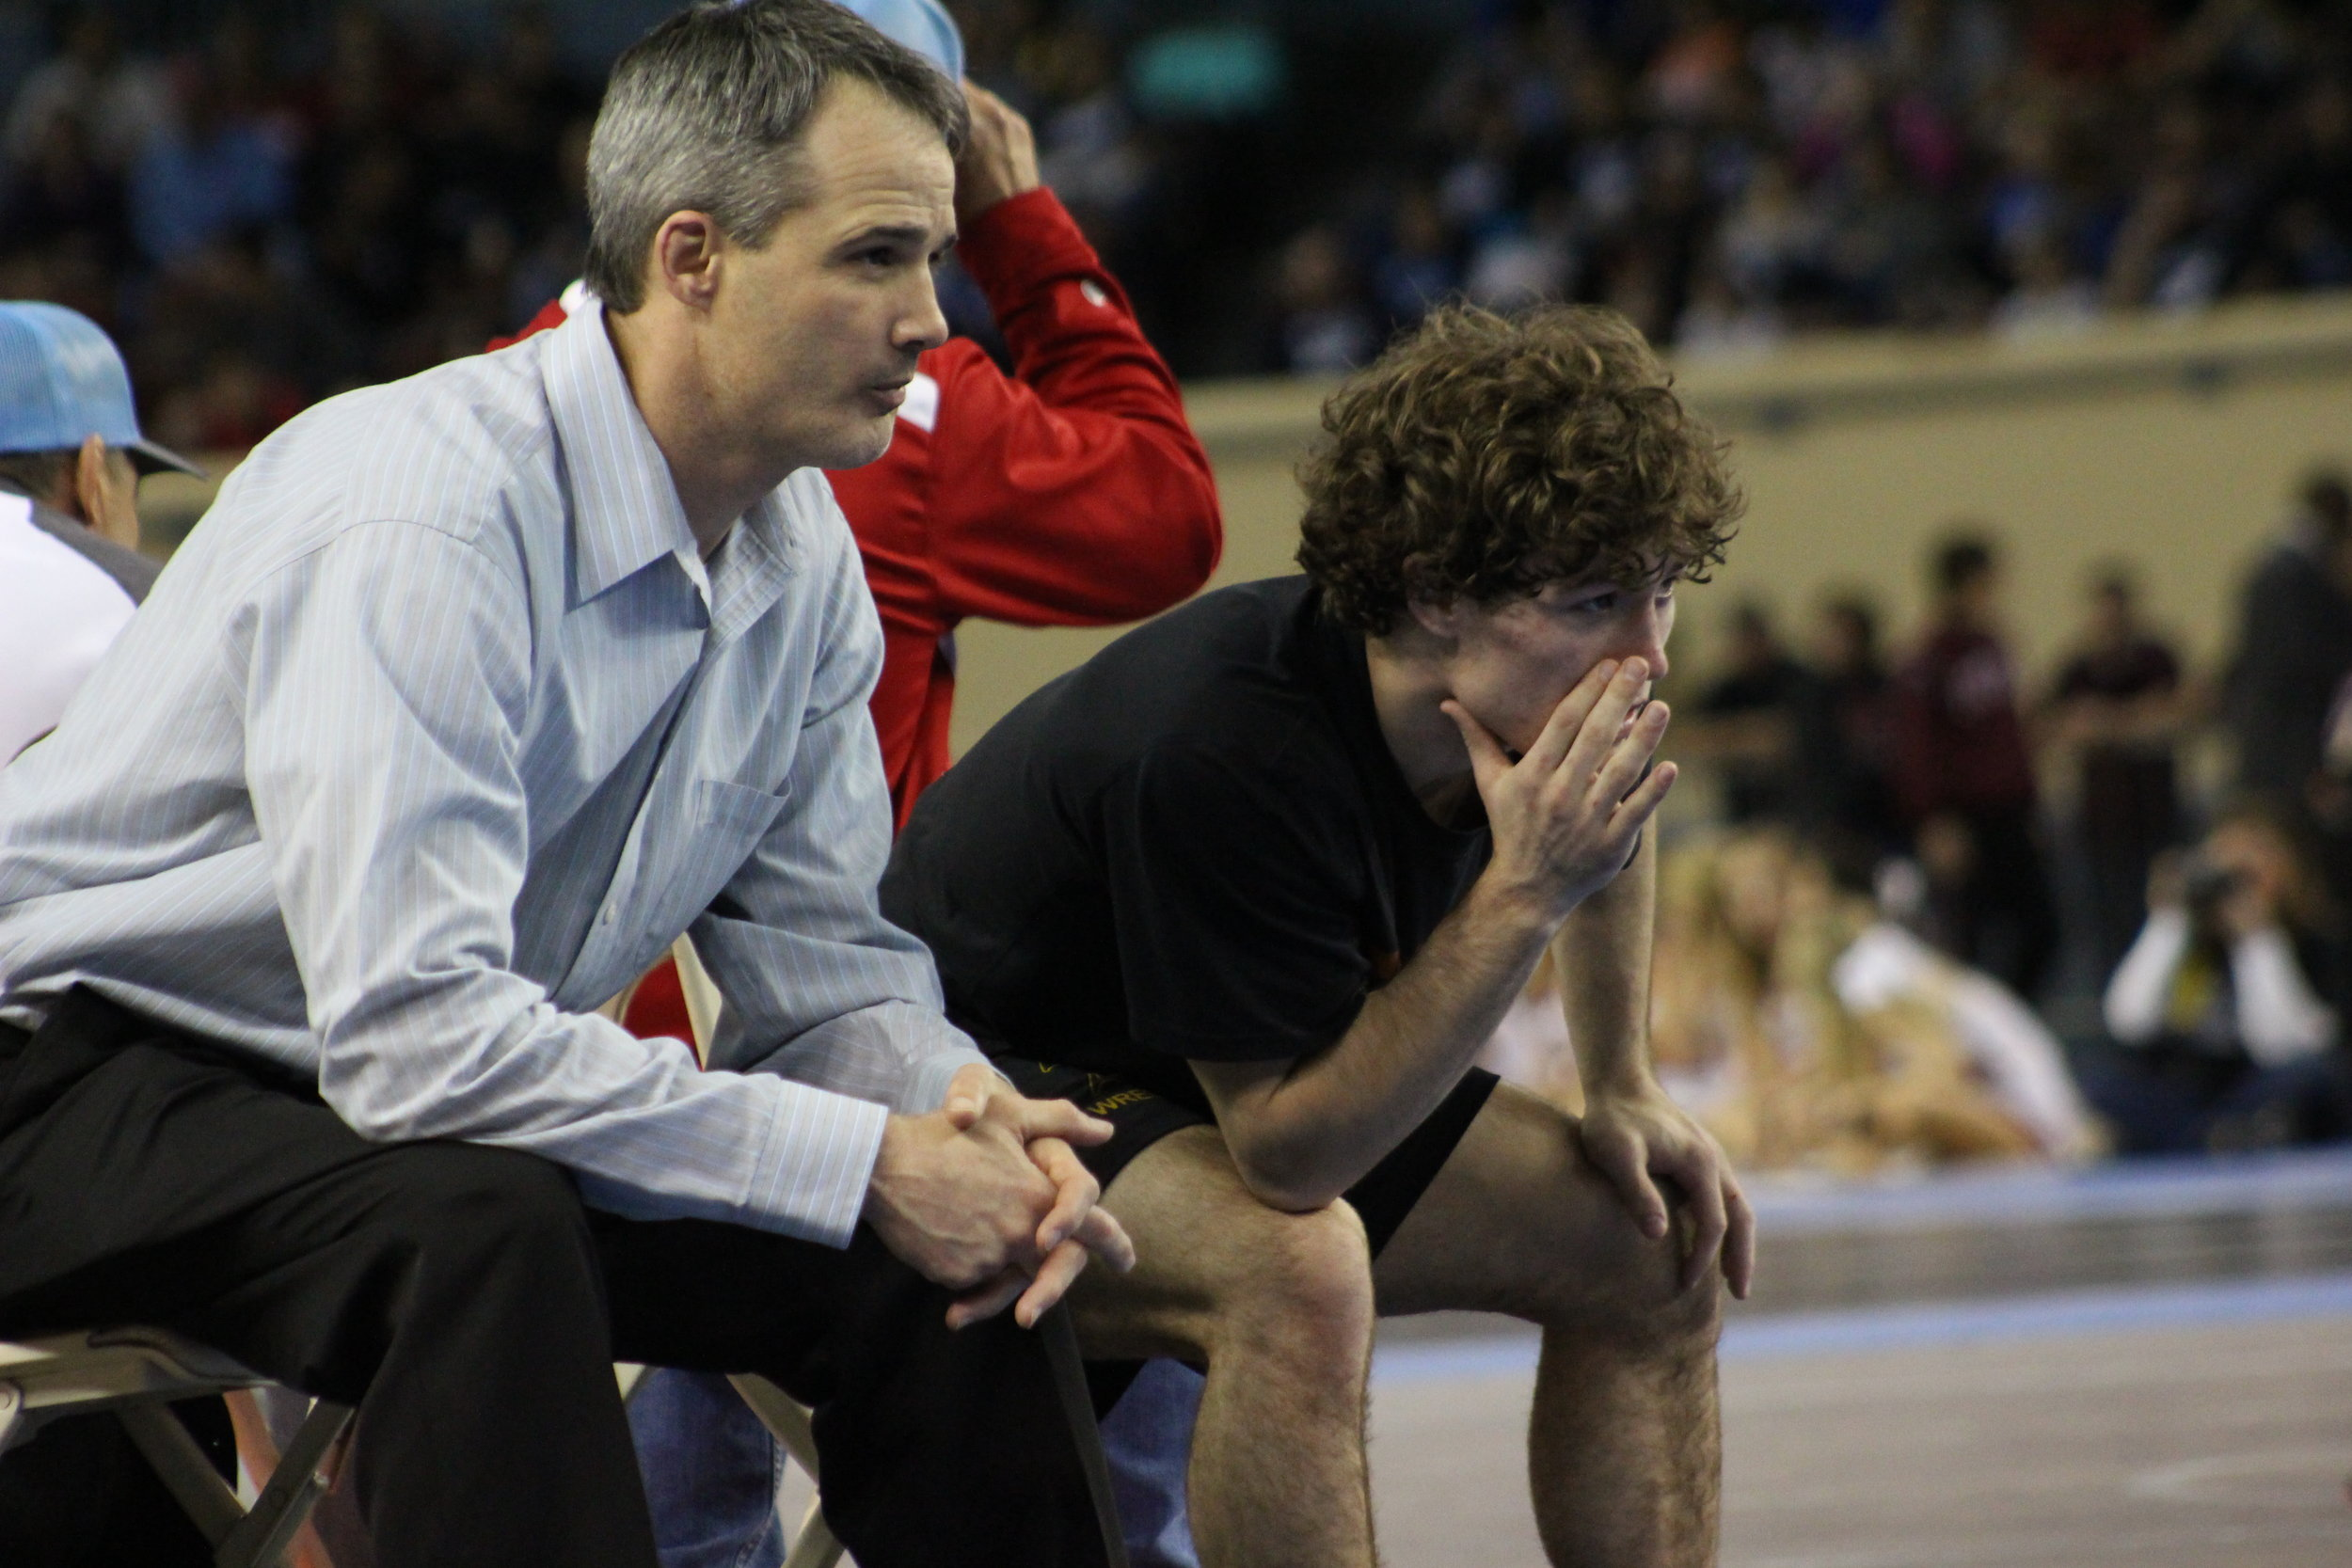 State Champion Daton Fix joined Head Coach Kelly Smith to coach Payton Scott in the finals.